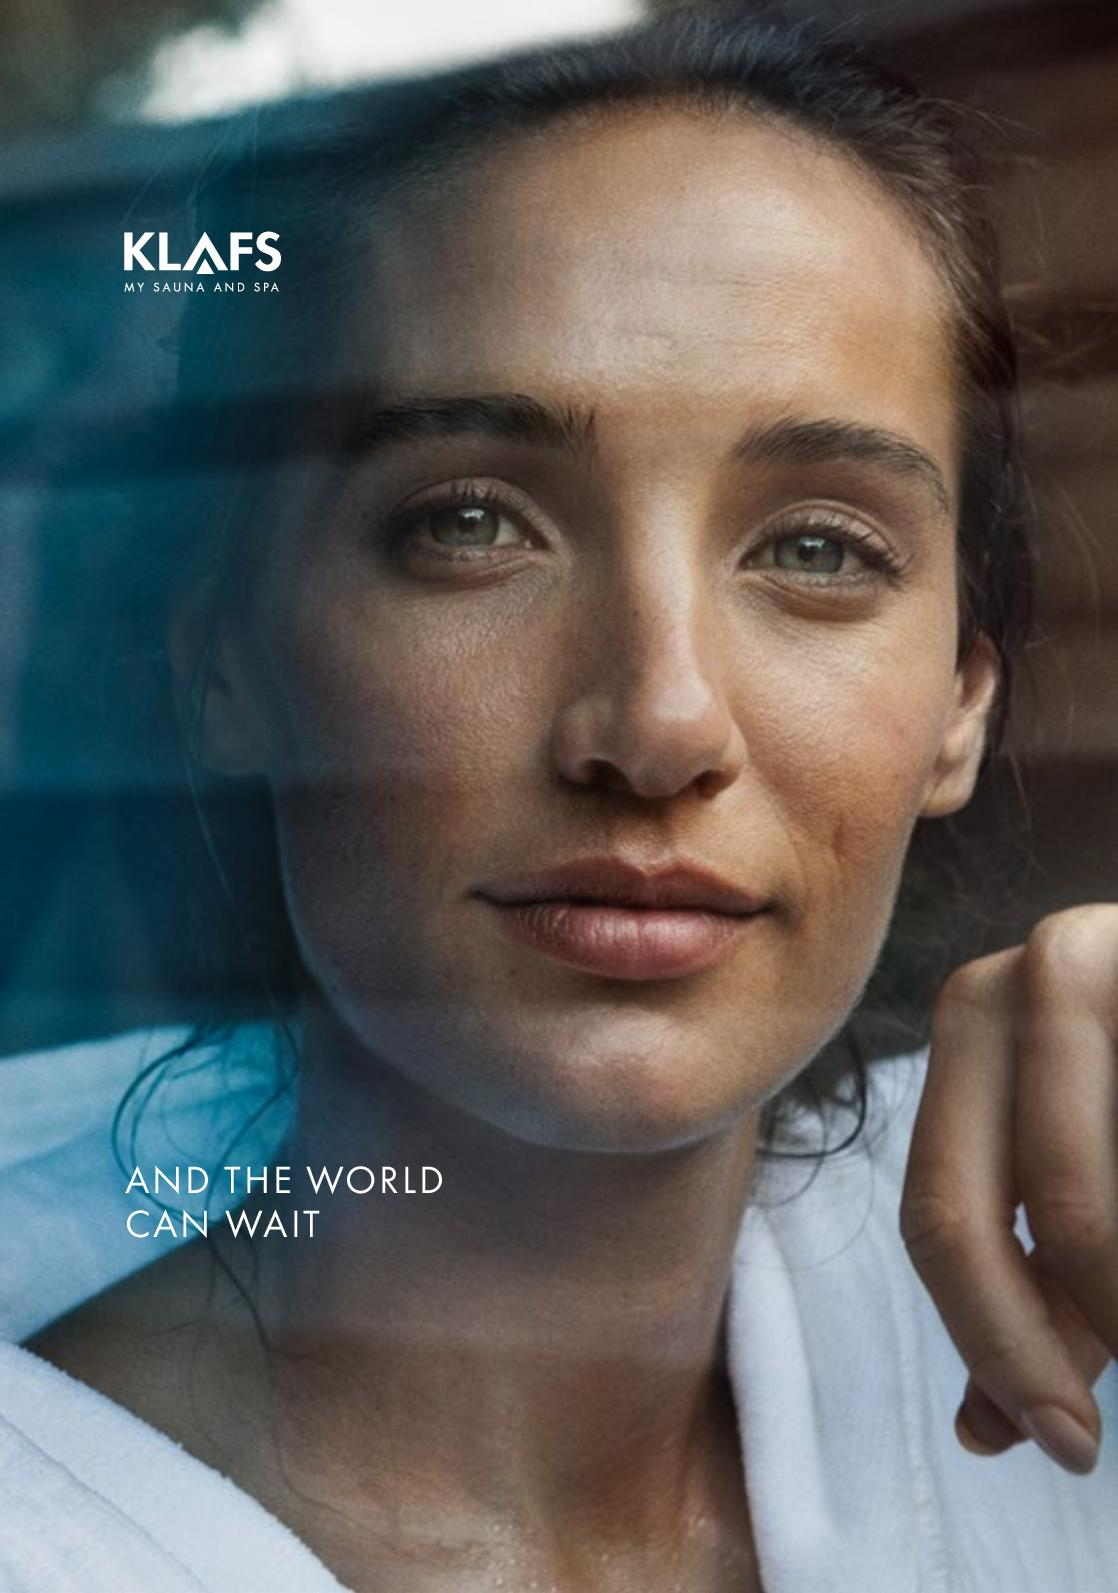 Klafs Frankfurt Klafs Magalog And The World Can Wait 2018 En Calameo Downloader